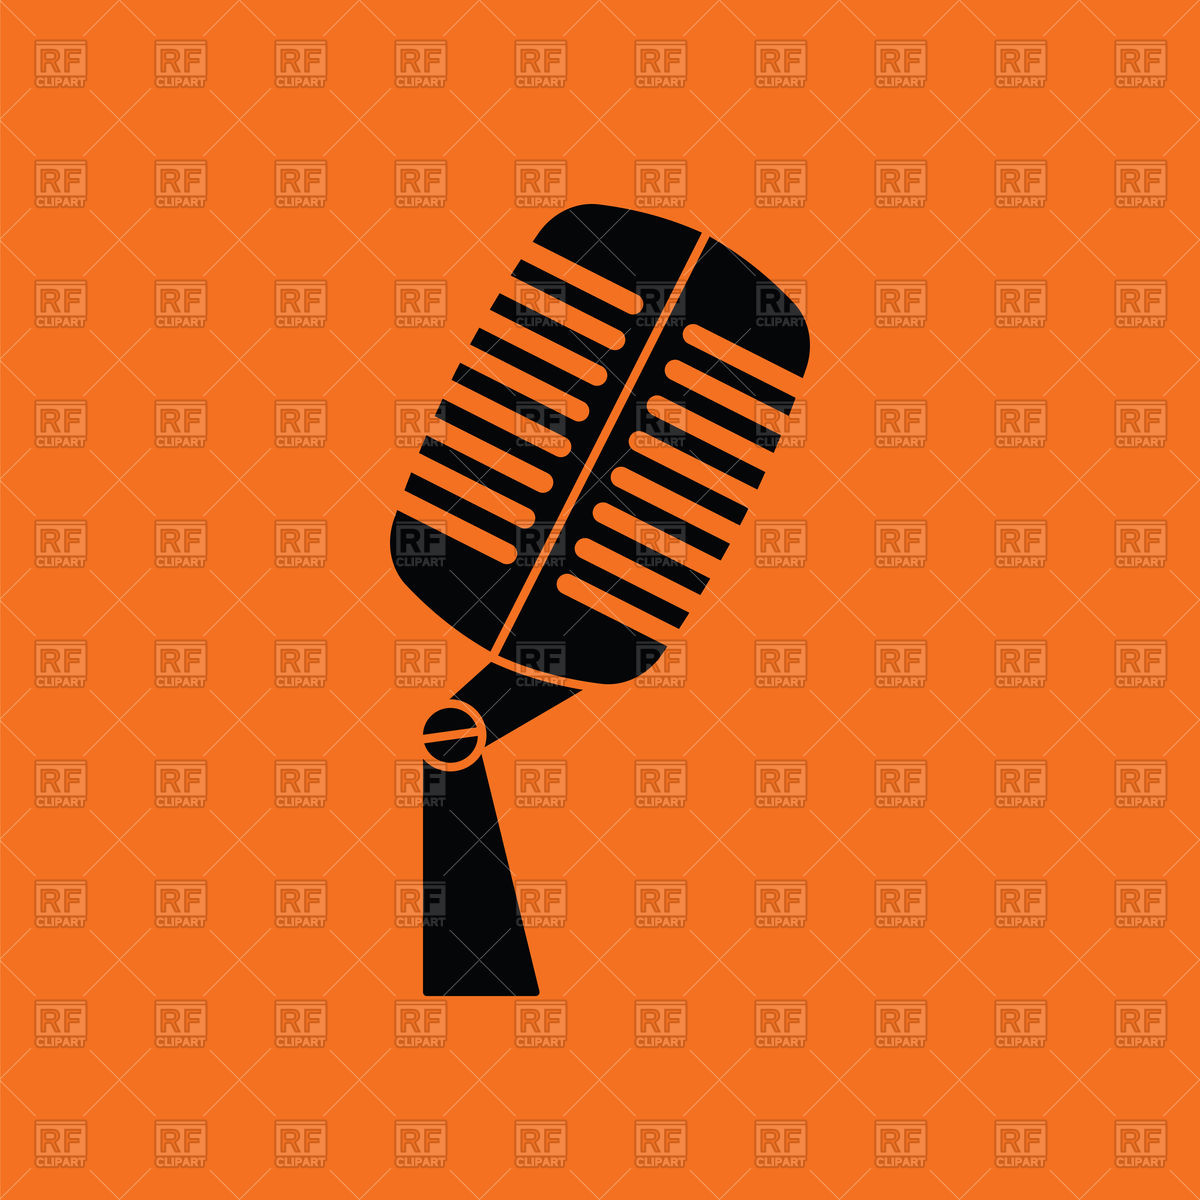 1200x1200 Retro And Modern Microphones Vector Image Vector Artwork Of